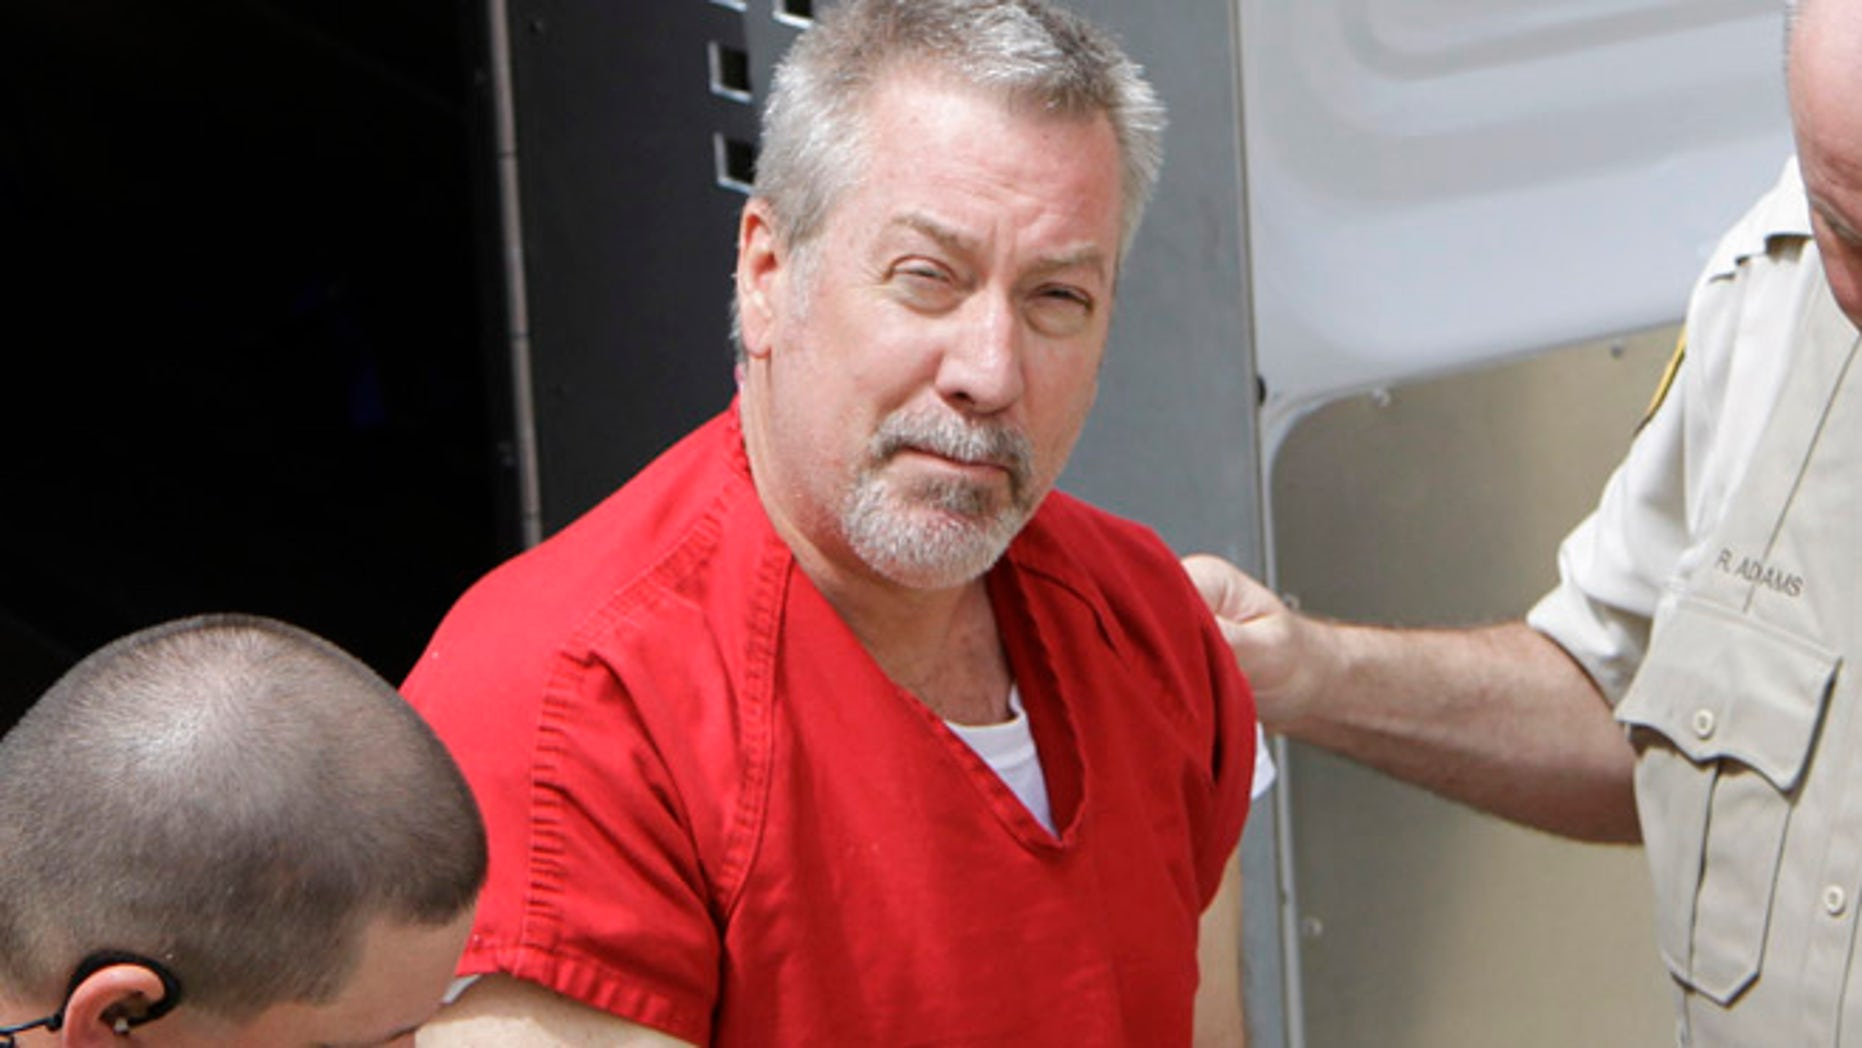 """Drew Peterson, seen here in 2009, was convicted last year of killing his third wife, but that didn't stop three male pen pals from reportedly contacting the former cop. """"Not only are they writing him letters, but they are putting money into his prison spending account so he can buy extra food for himself in the prison commissary like Skittles and popcorn,"""" a source close to Peterson told the Chicago Sun-Times last year. (AP)"""